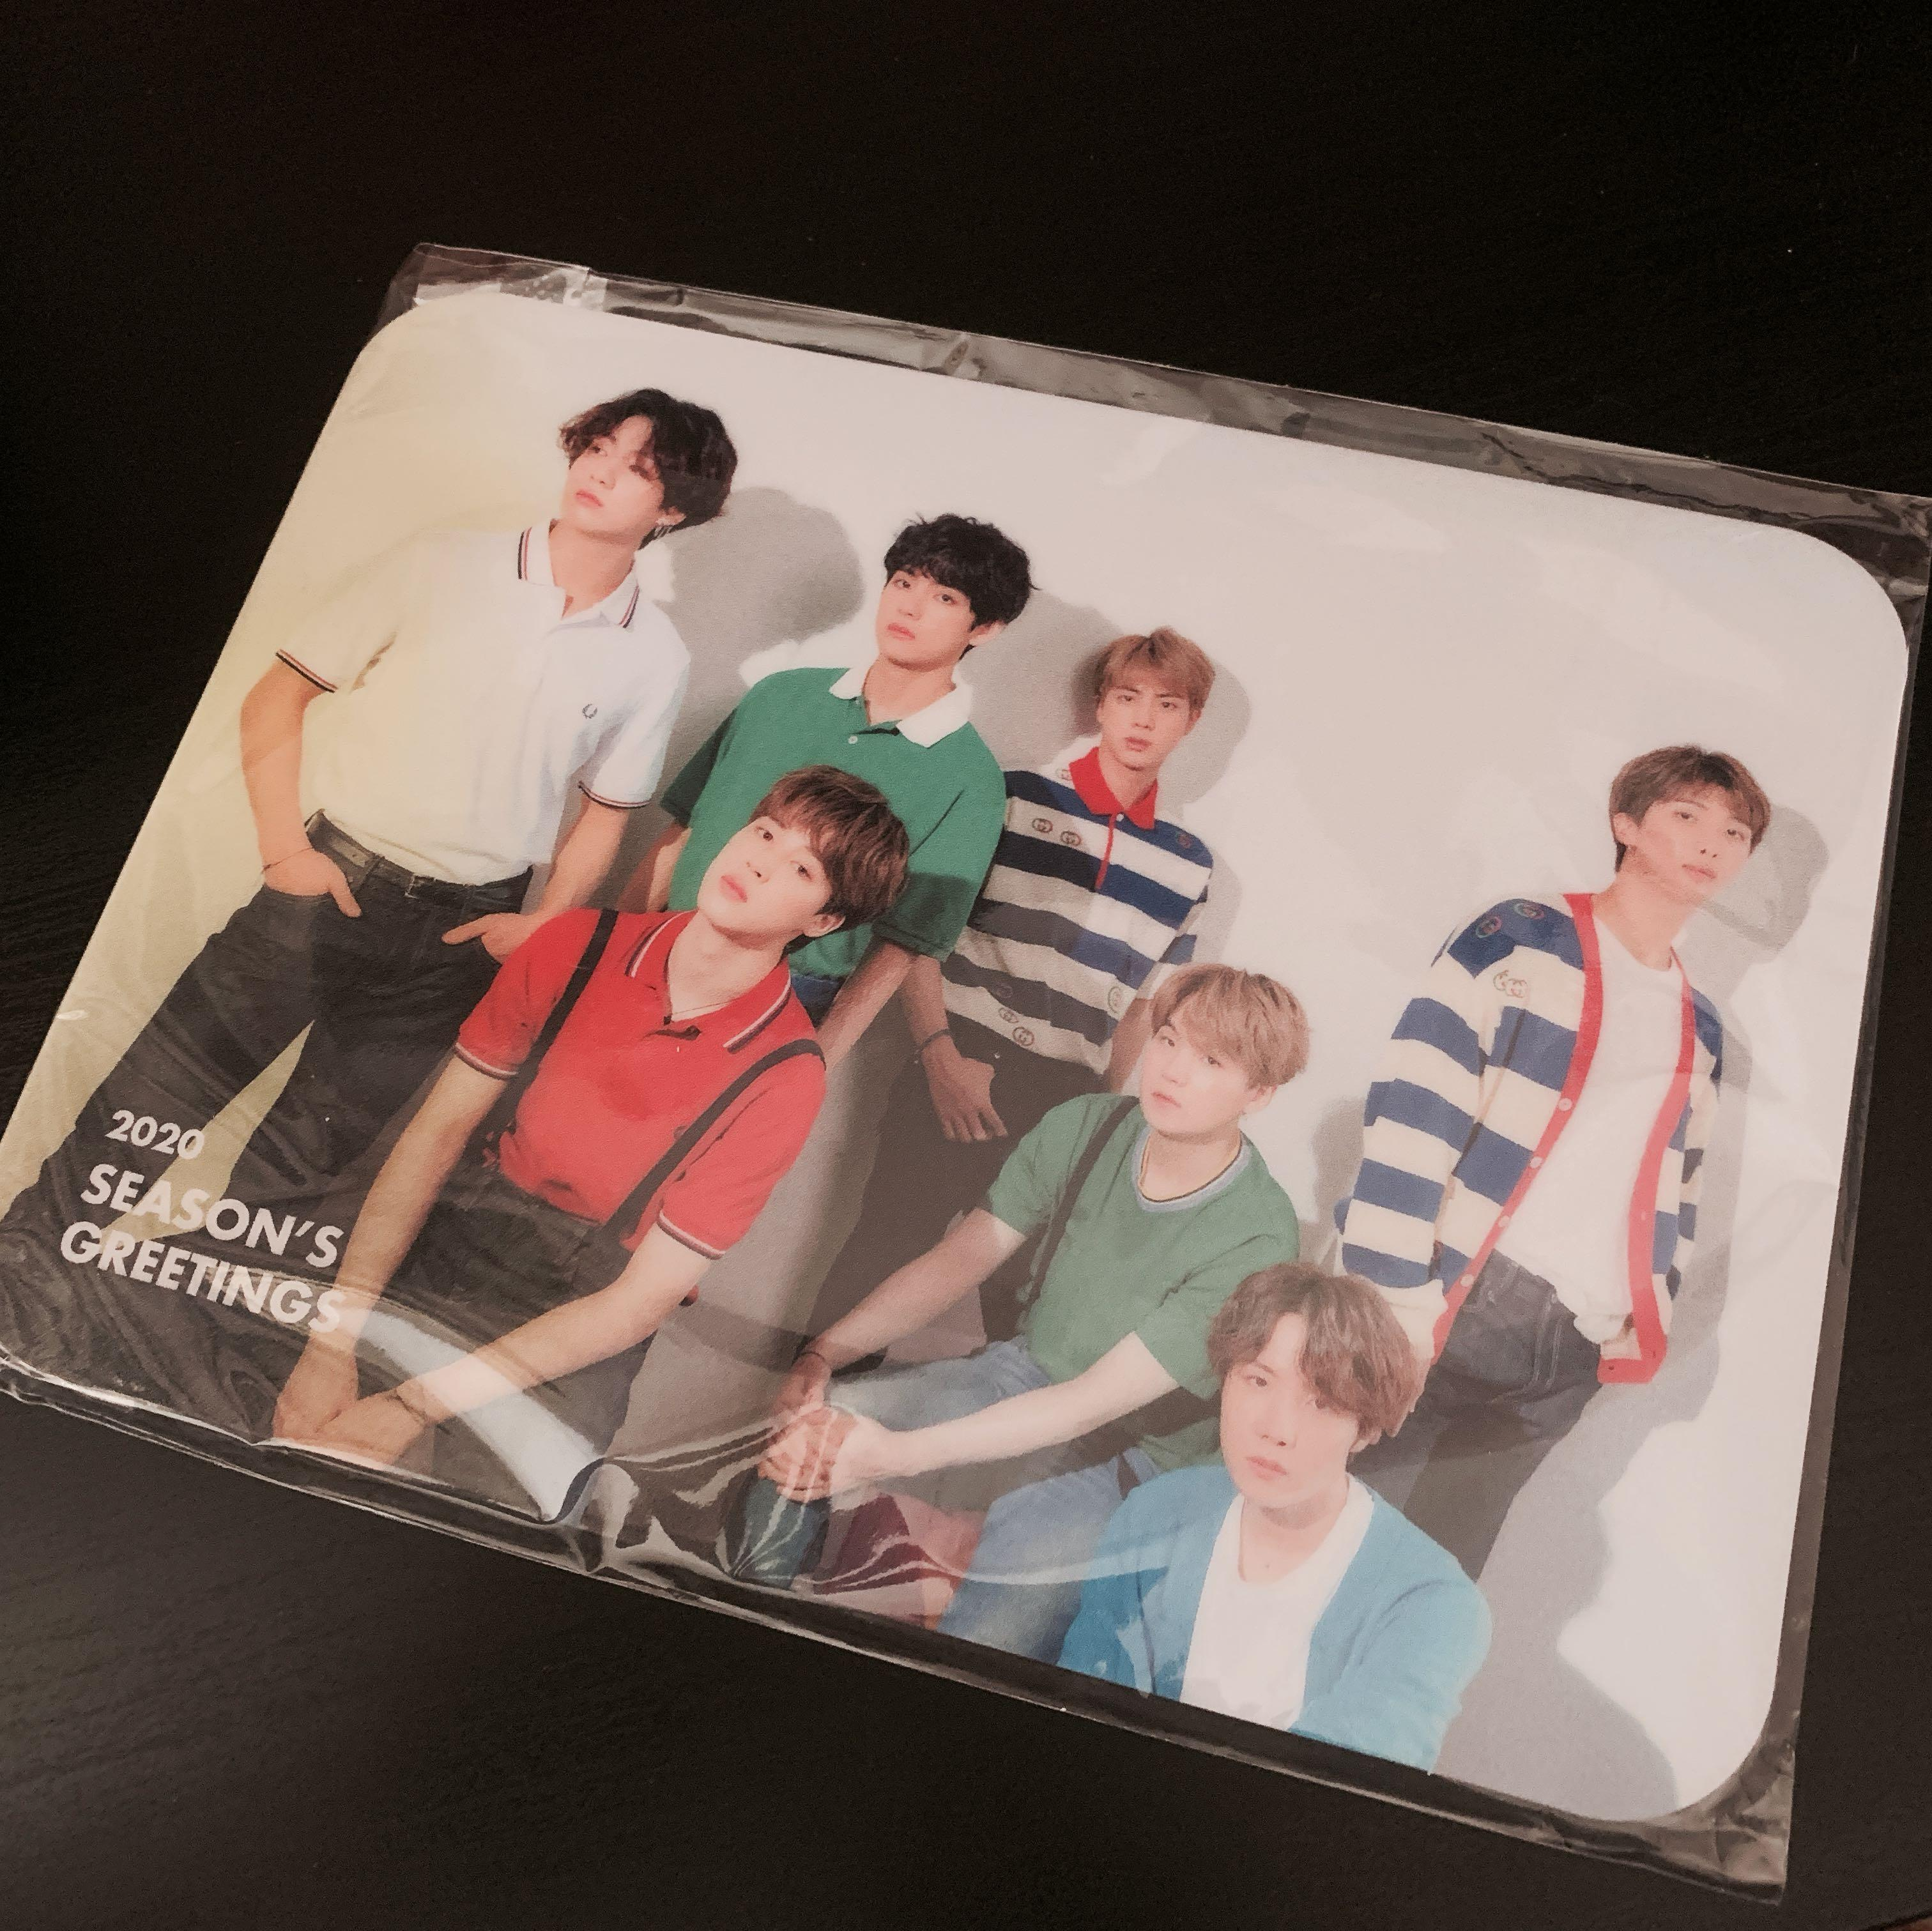 WTS BTS Season's Greetings Limited Edition Mouse Pad